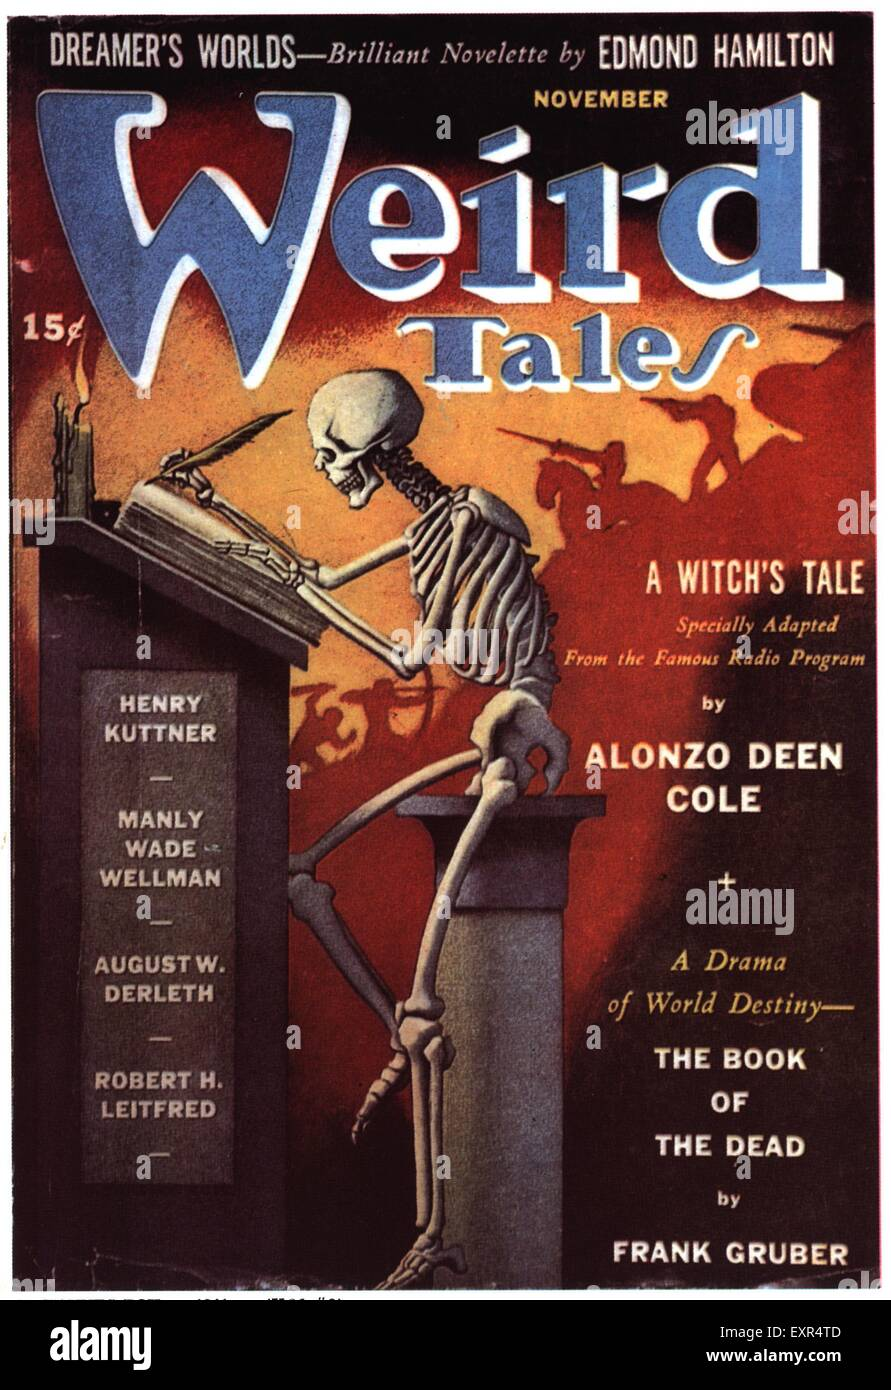 1930s USA Weird Tales Magazine Cover Stock Photo